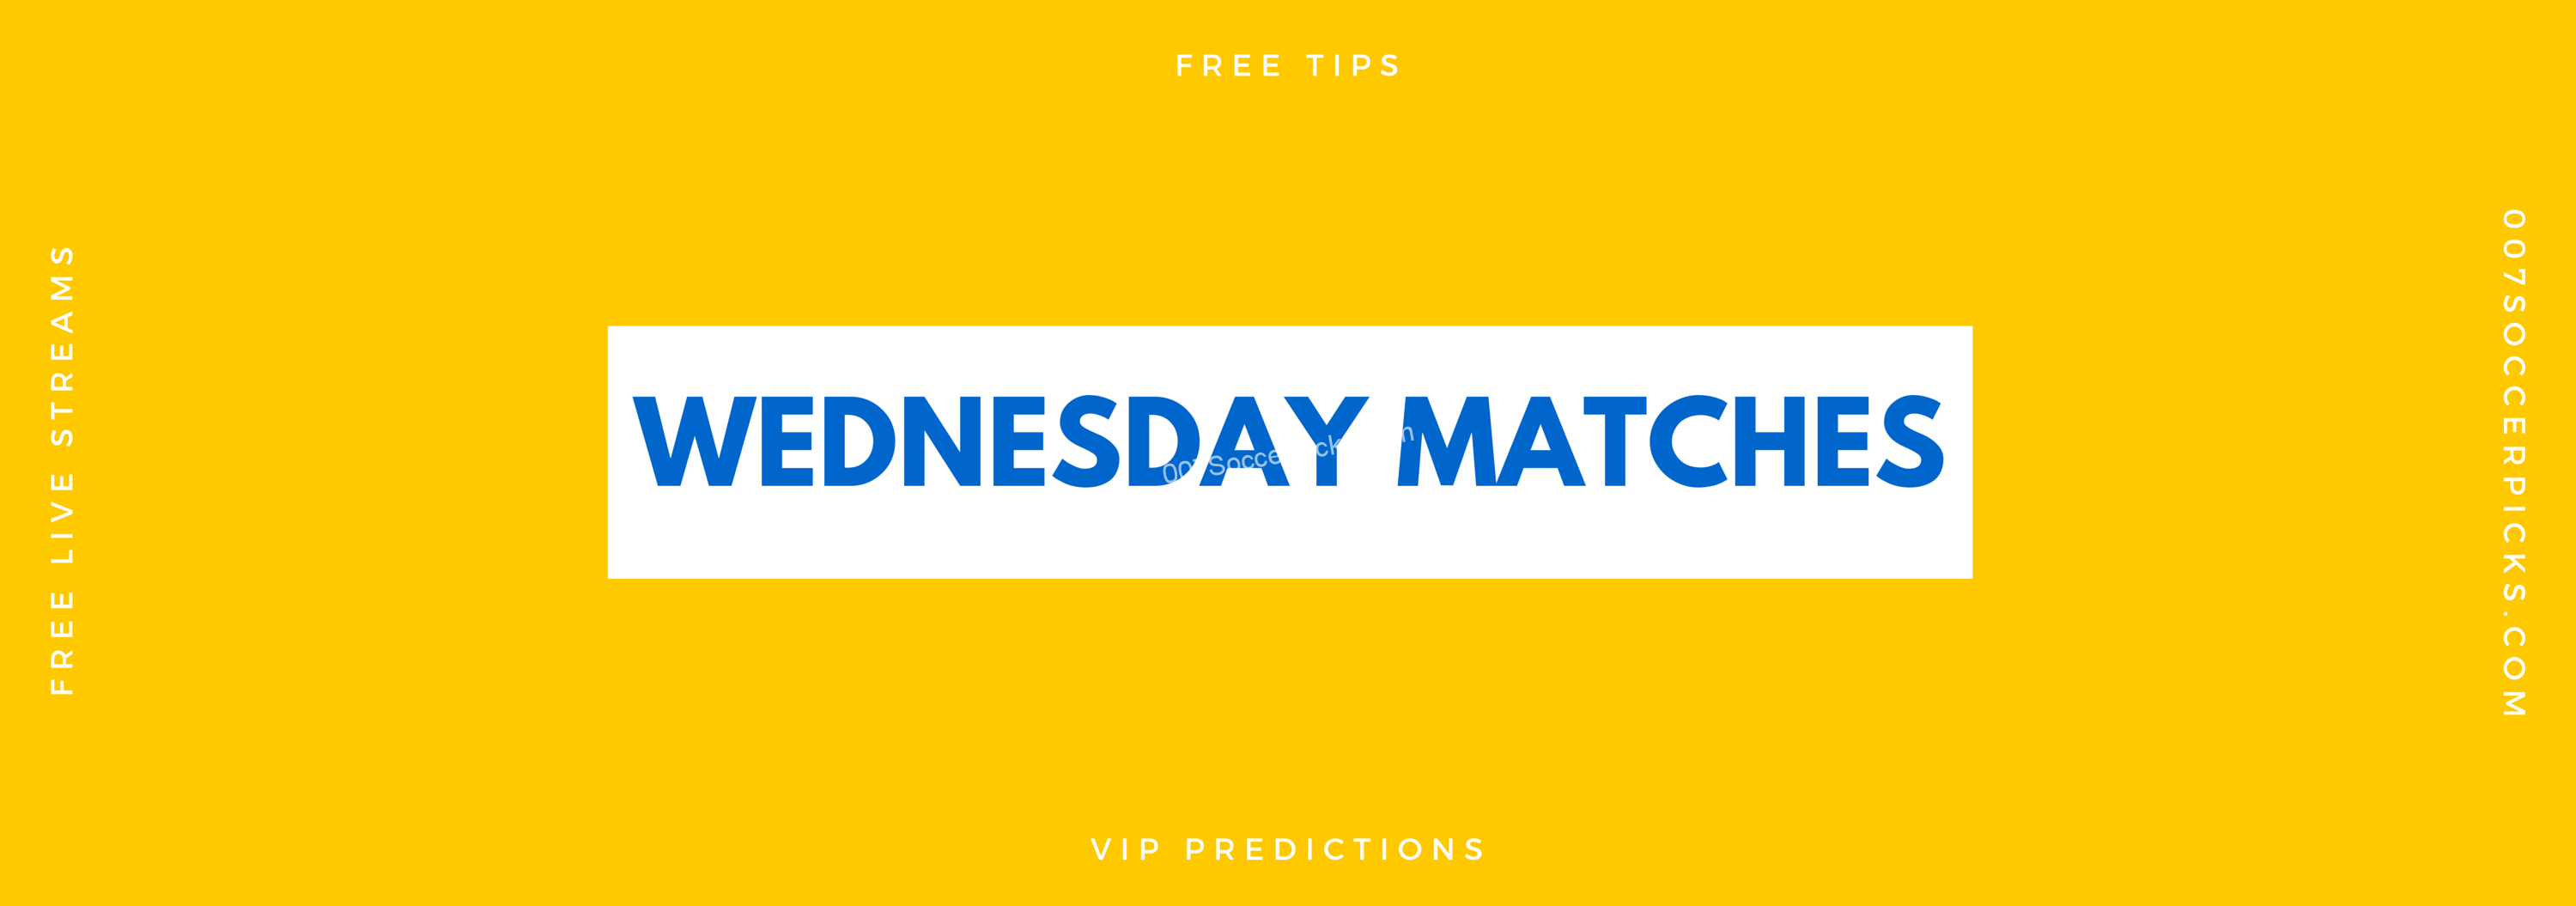 Our soccer picks for Wednesday Matches